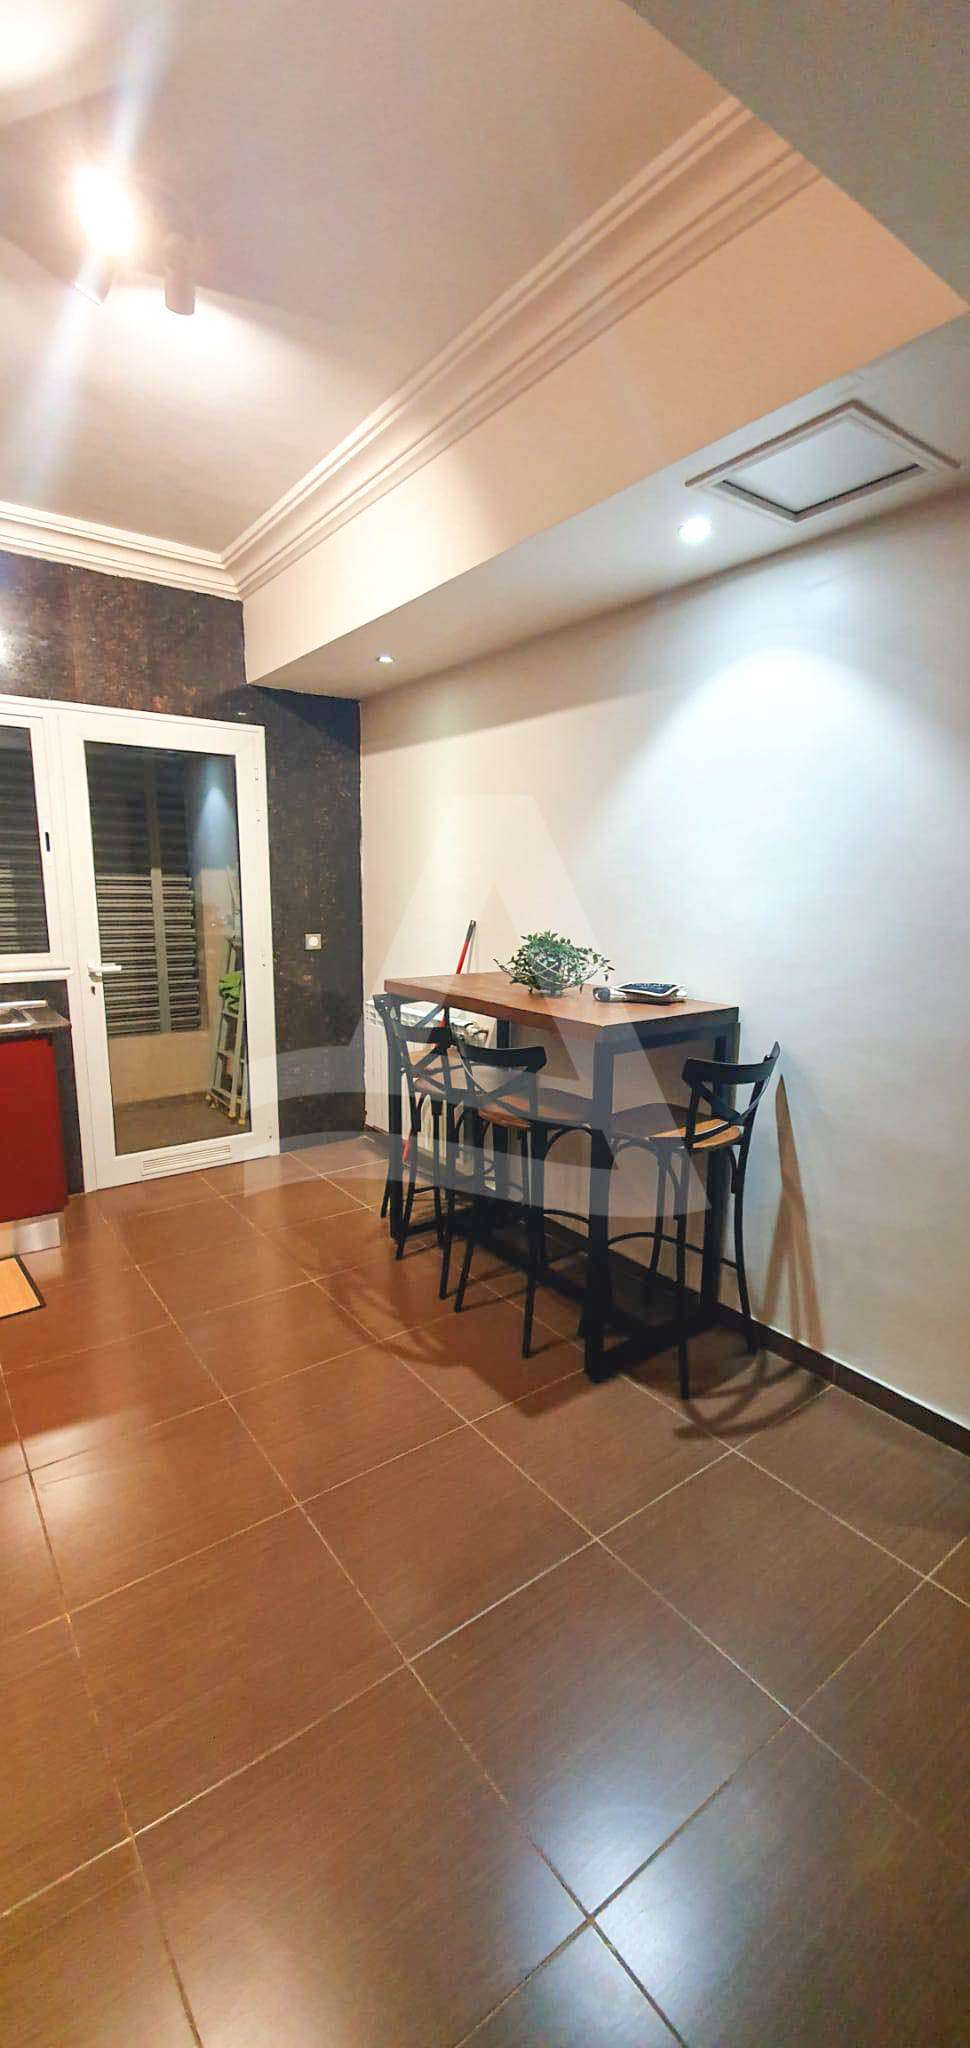 httpss3.amazonaws.comlogimoaws13470025091631090057appartement_lac_2_1_sur_8-1